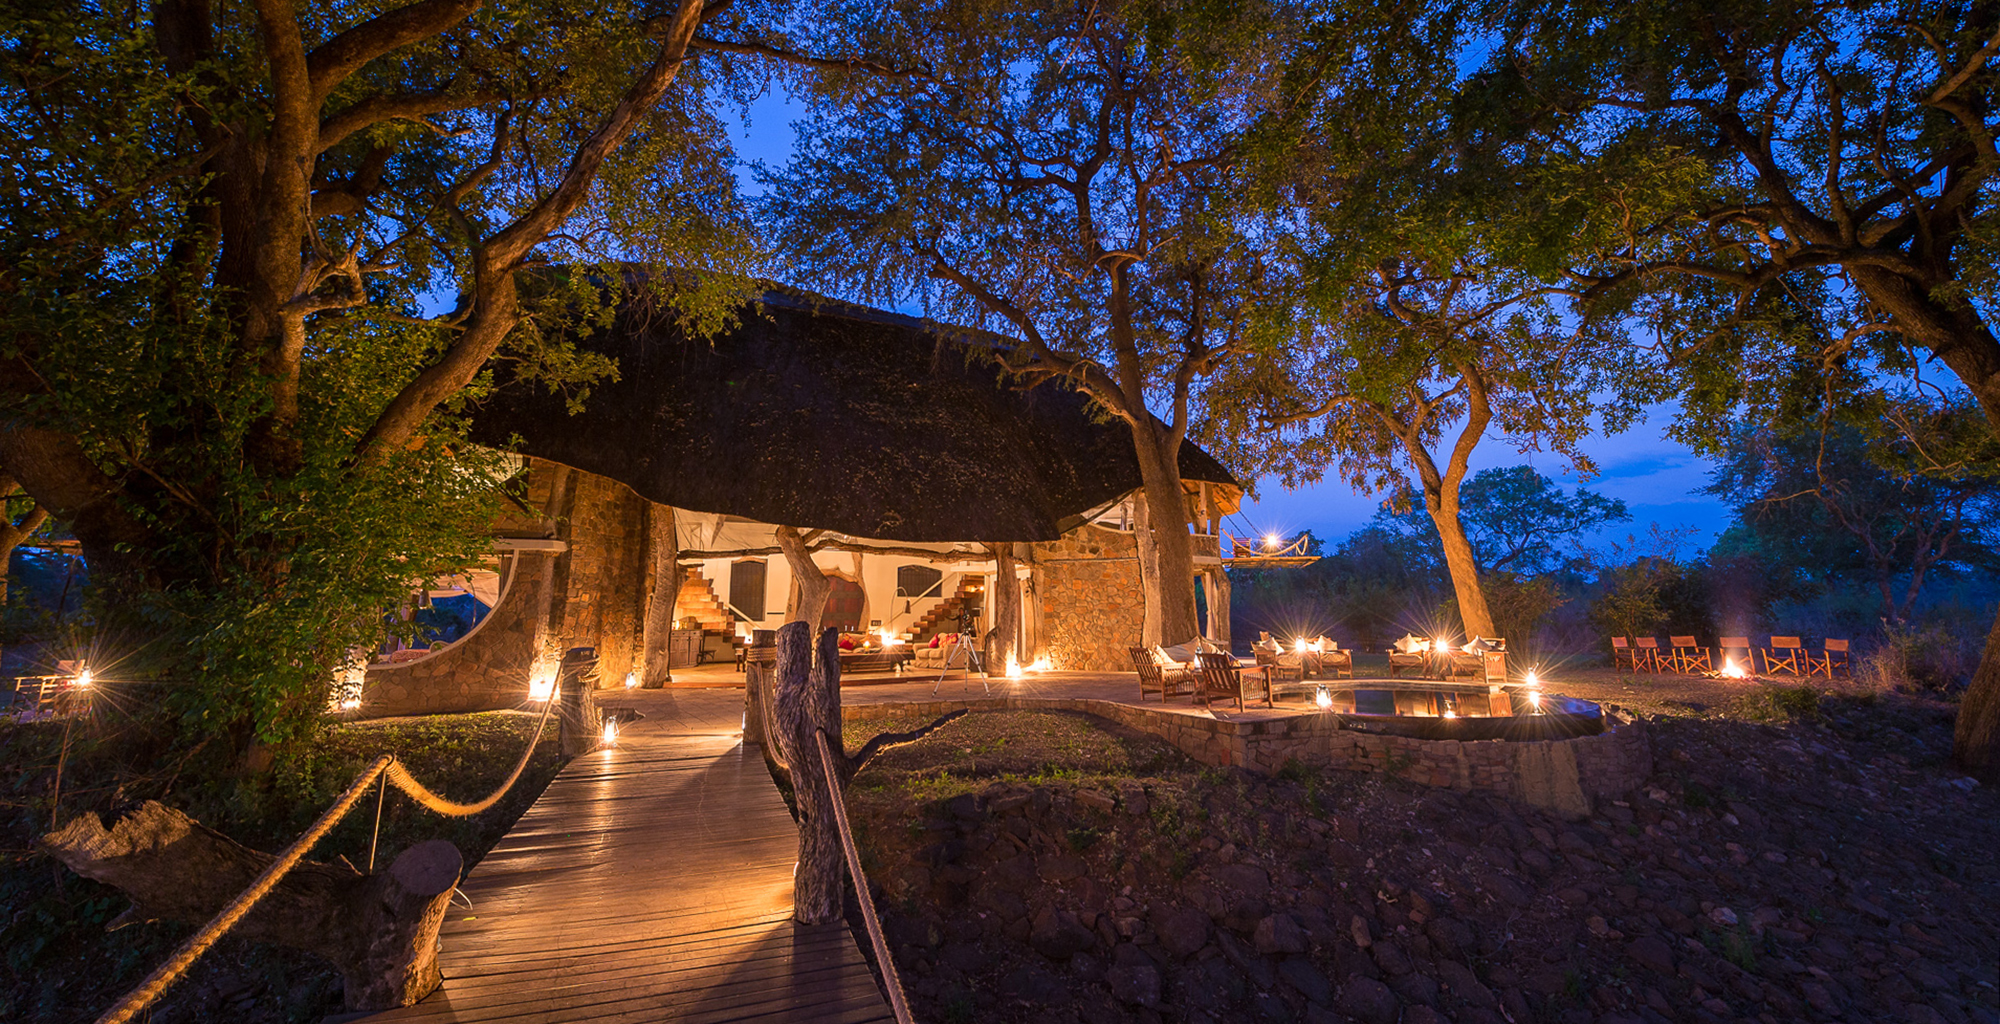 Zambia-Luangwa-Safari-House-Exterior-Path